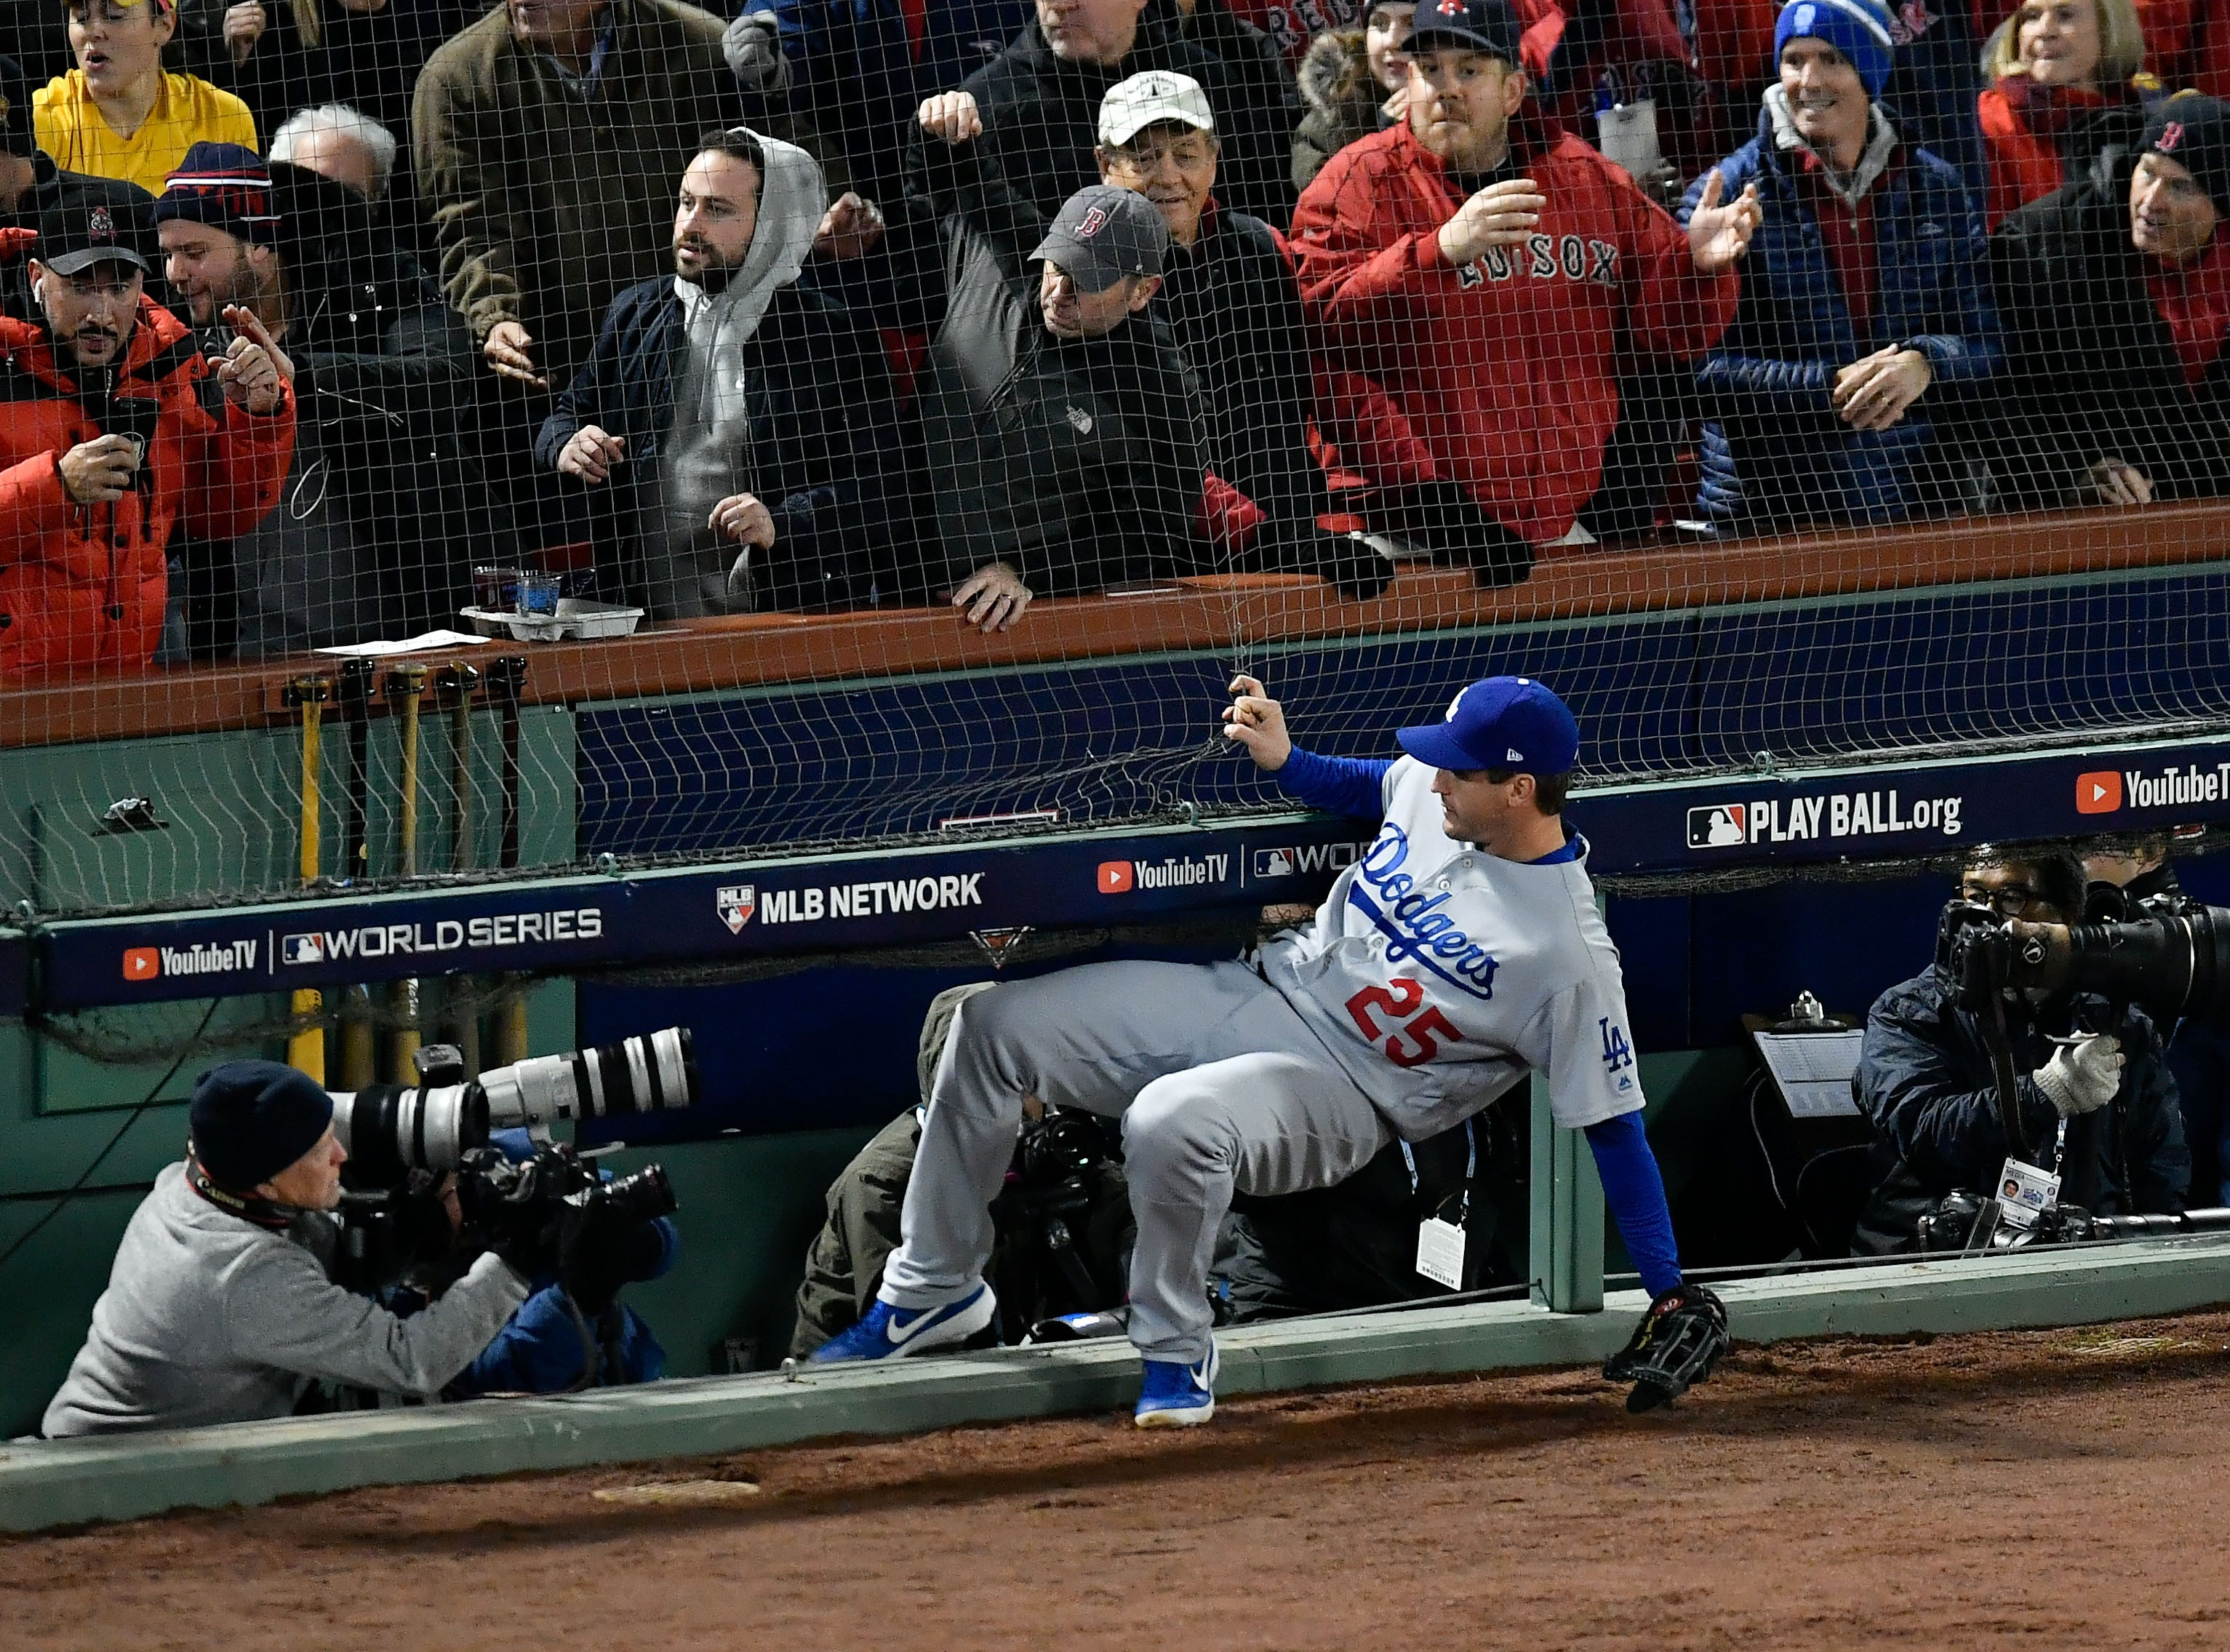 Game 2 at Fenway Park: Dodgers first baseman David Freese falls into the photographer pit while attempting to field a foul ball in the second inning.